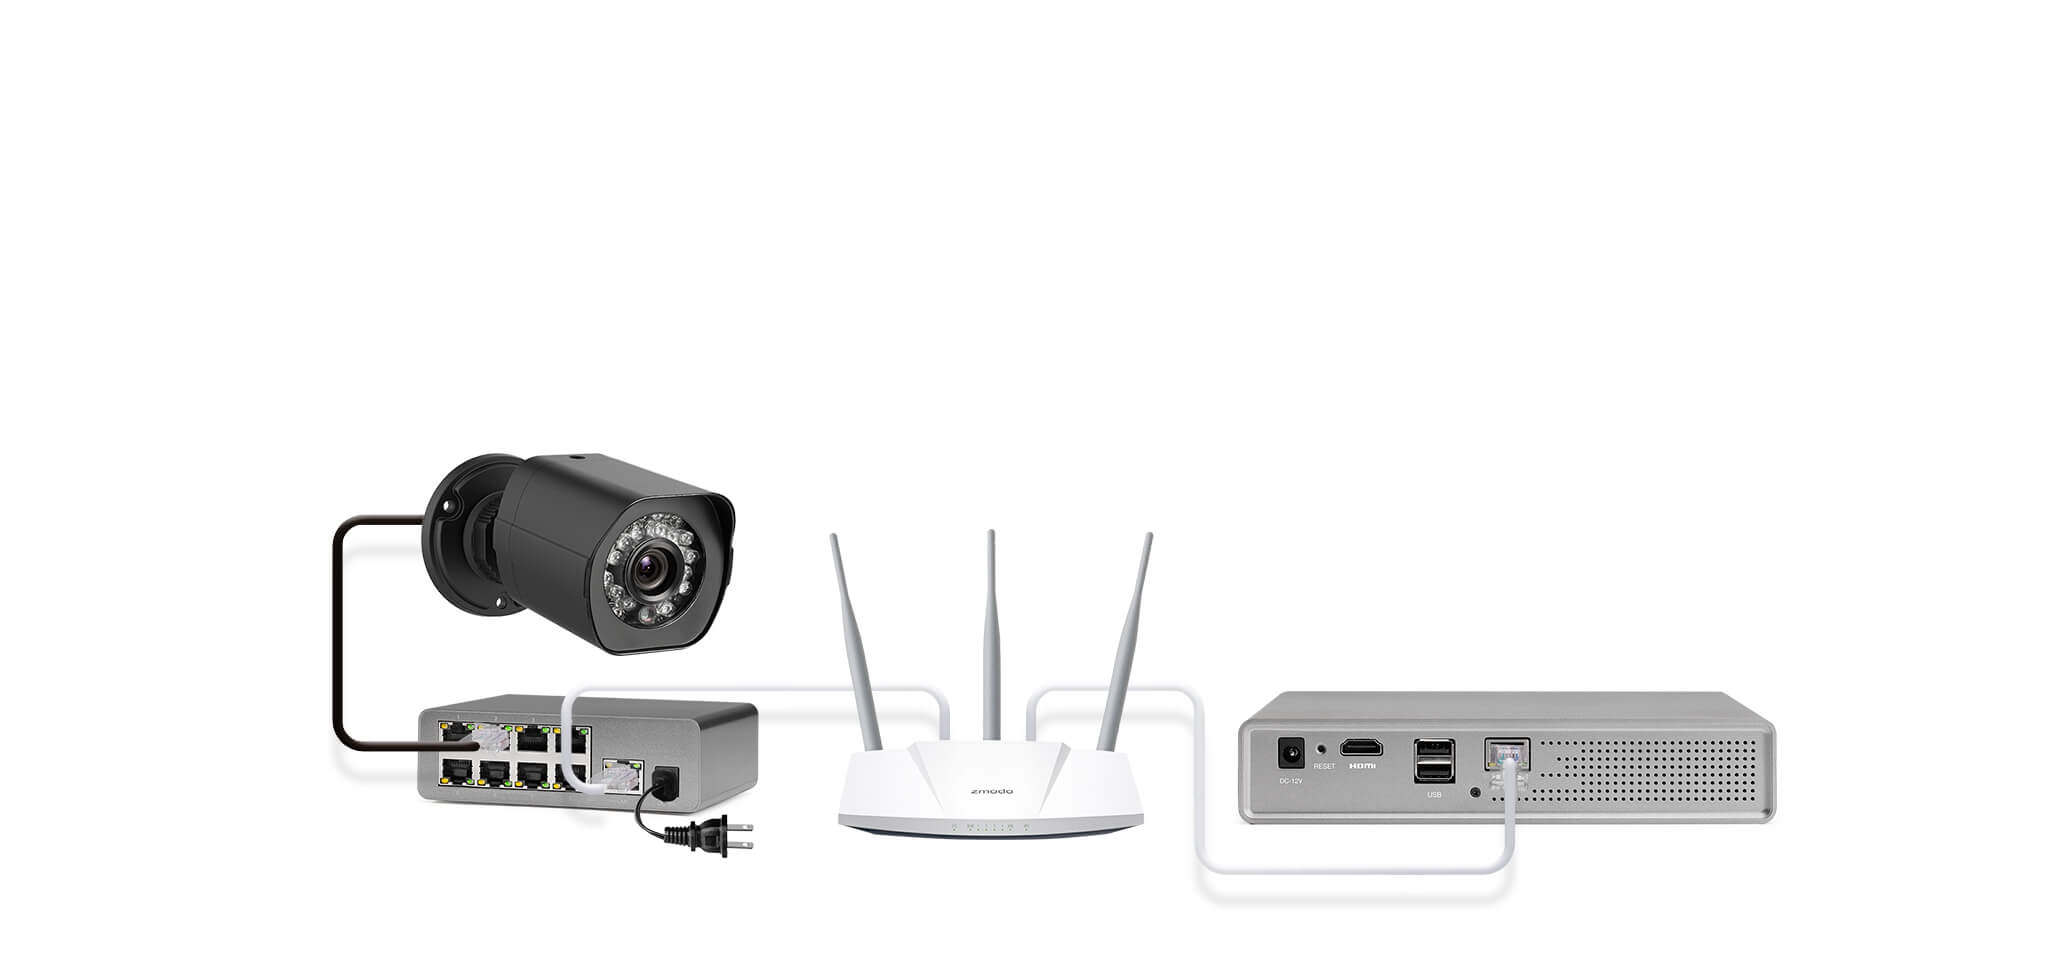 Zmodo 8 Channel 1080p Home And Business Security Camera System With Usb Cable Repeater Schematic Flexible Installation